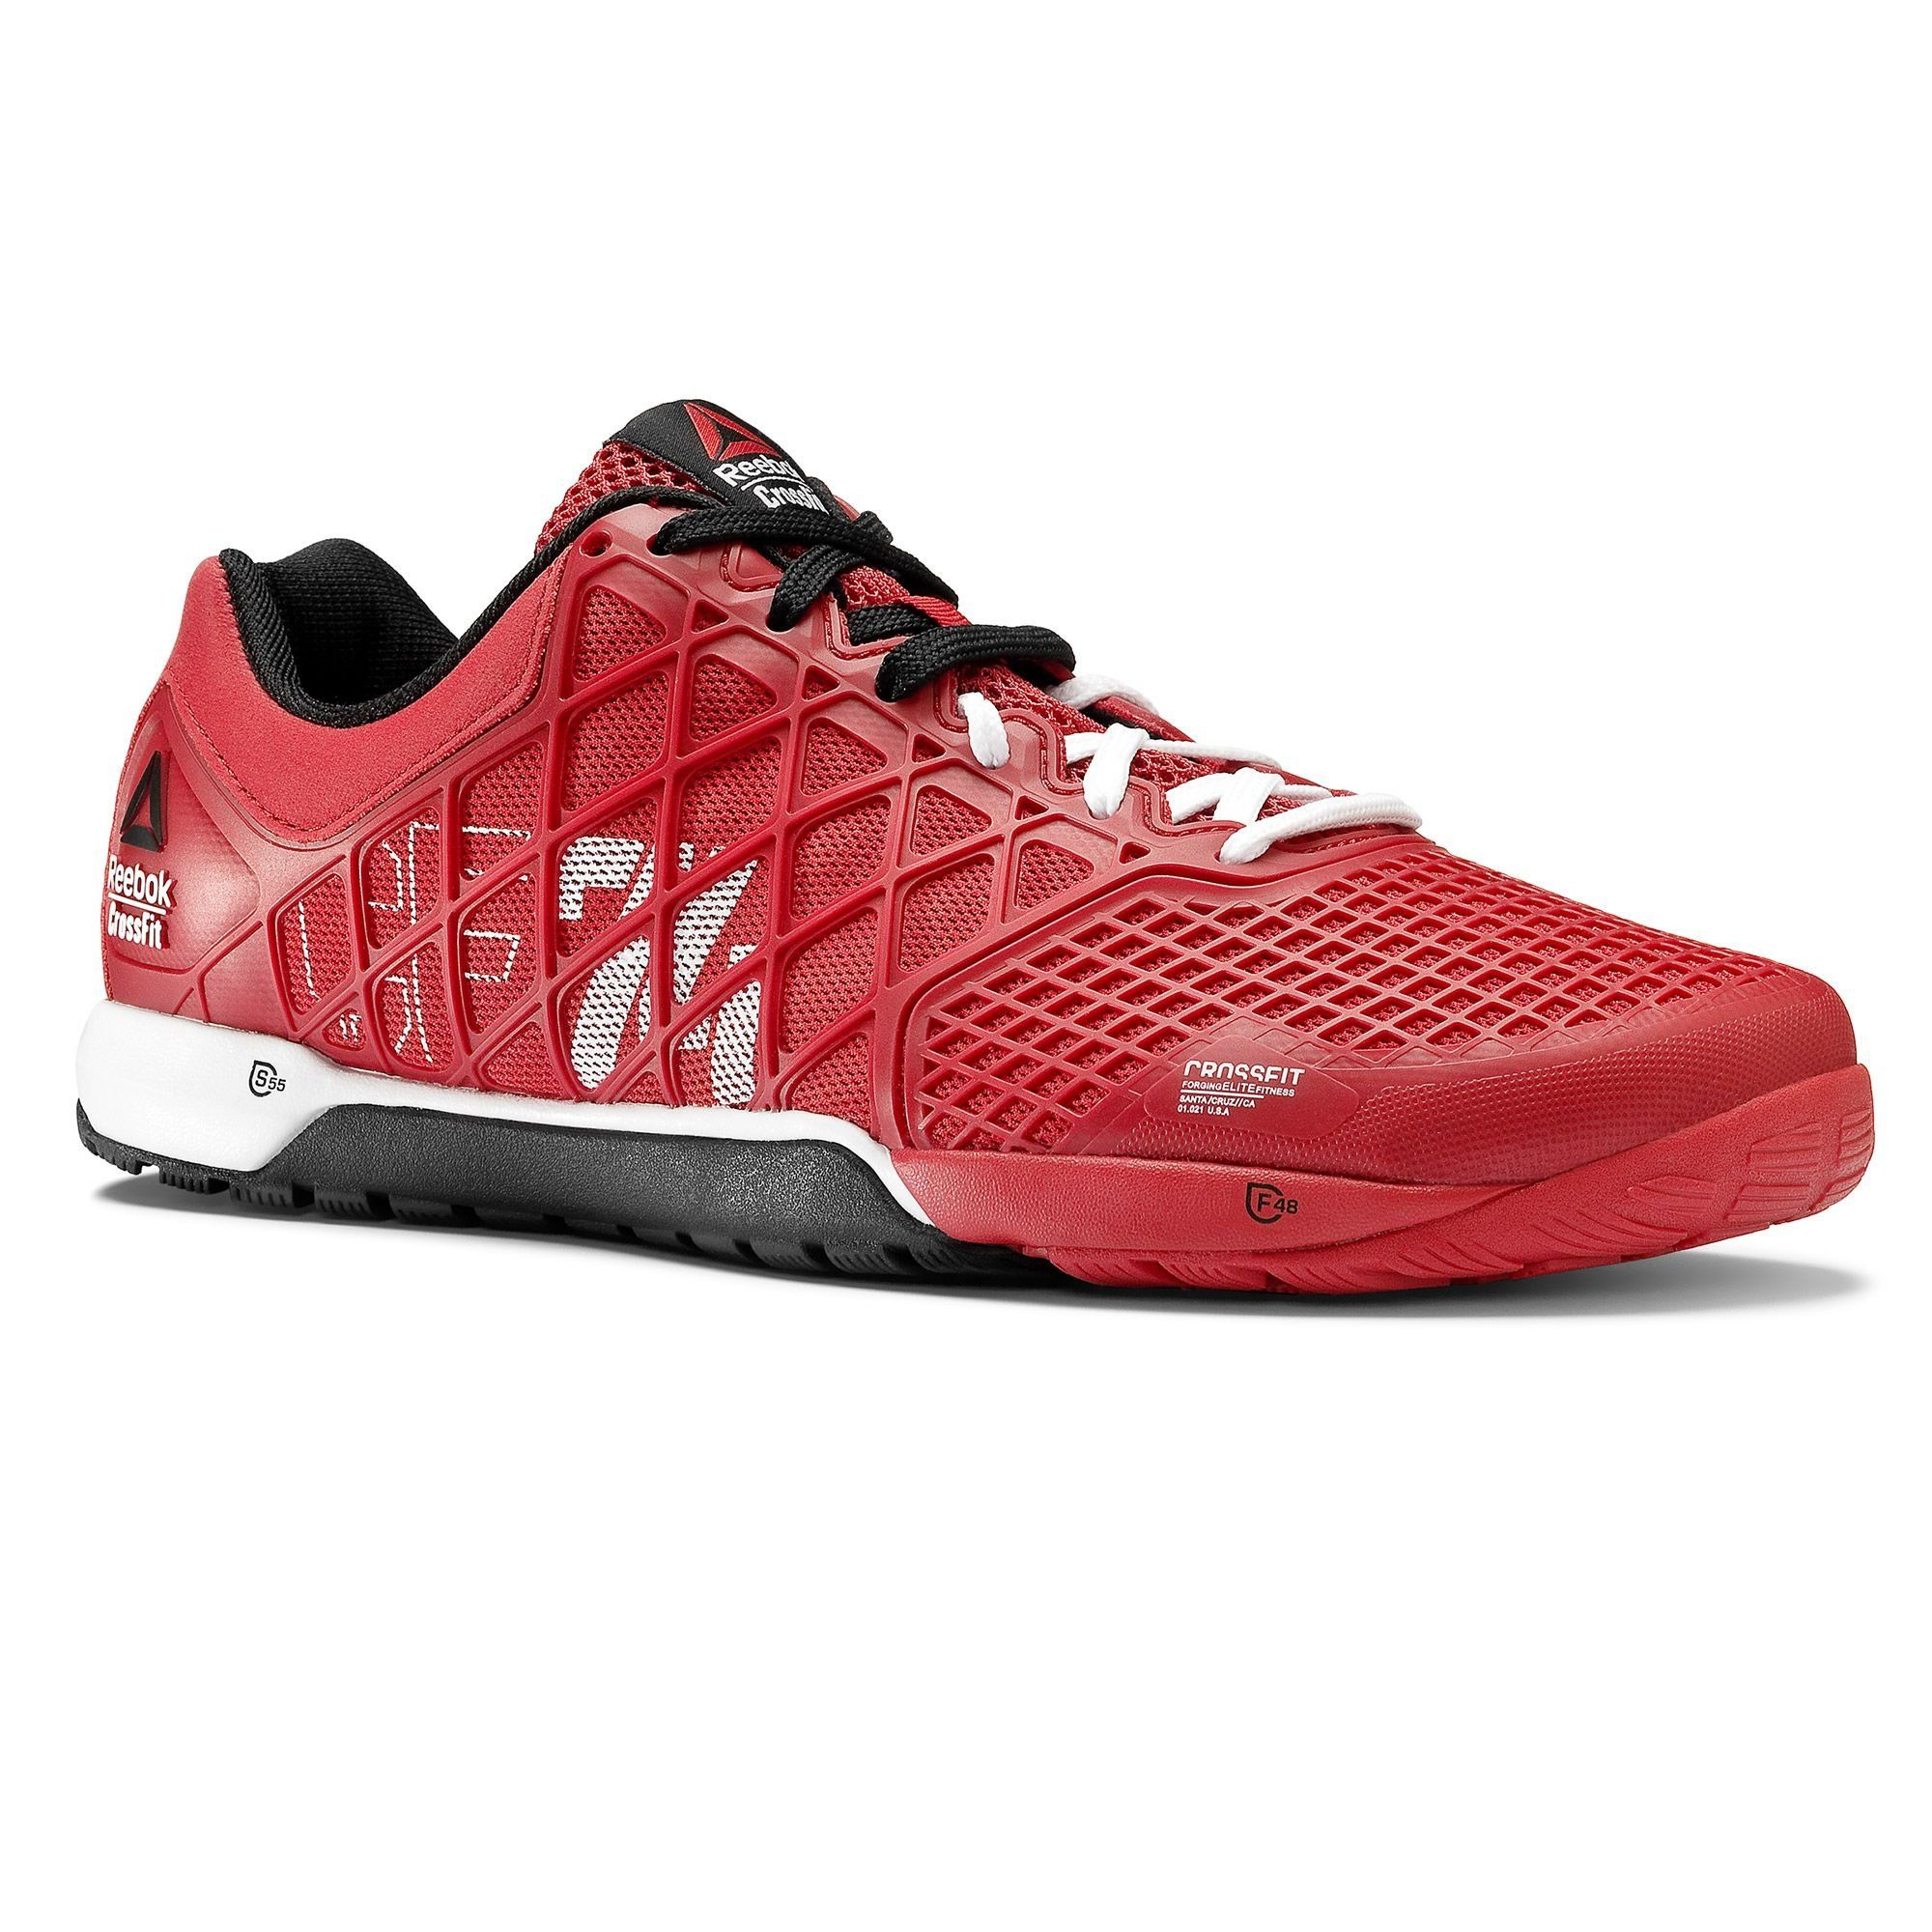 My shoes for Reebok Crossfit Nano Mens Training Shoe Excellent Red -White-Black